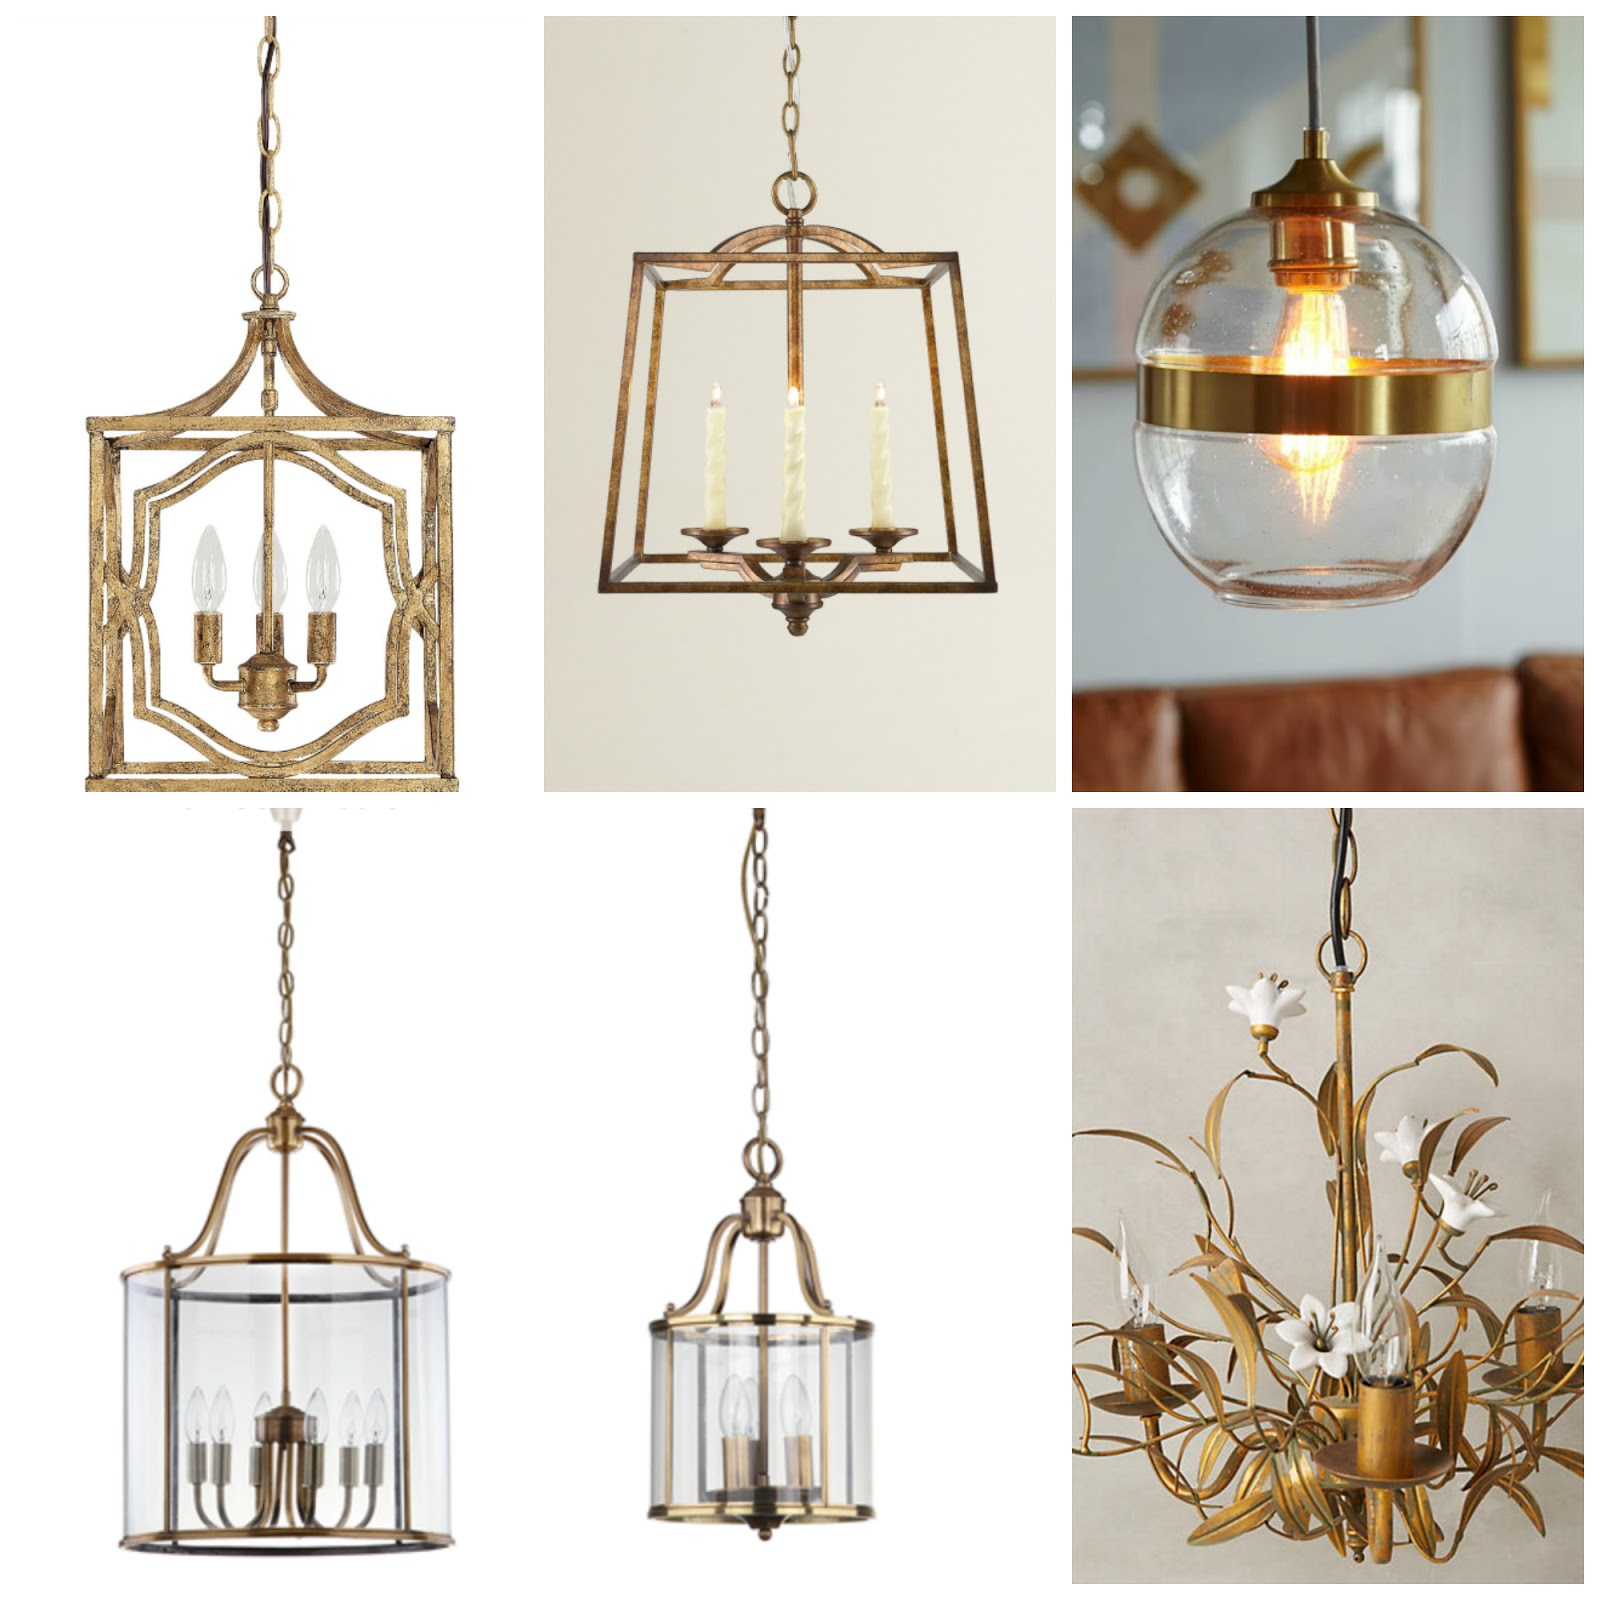 shop the look lighting  sc 1 st  Shabbyfufu & Best 20 Unique Pendant Lights - shabbyfufu.com